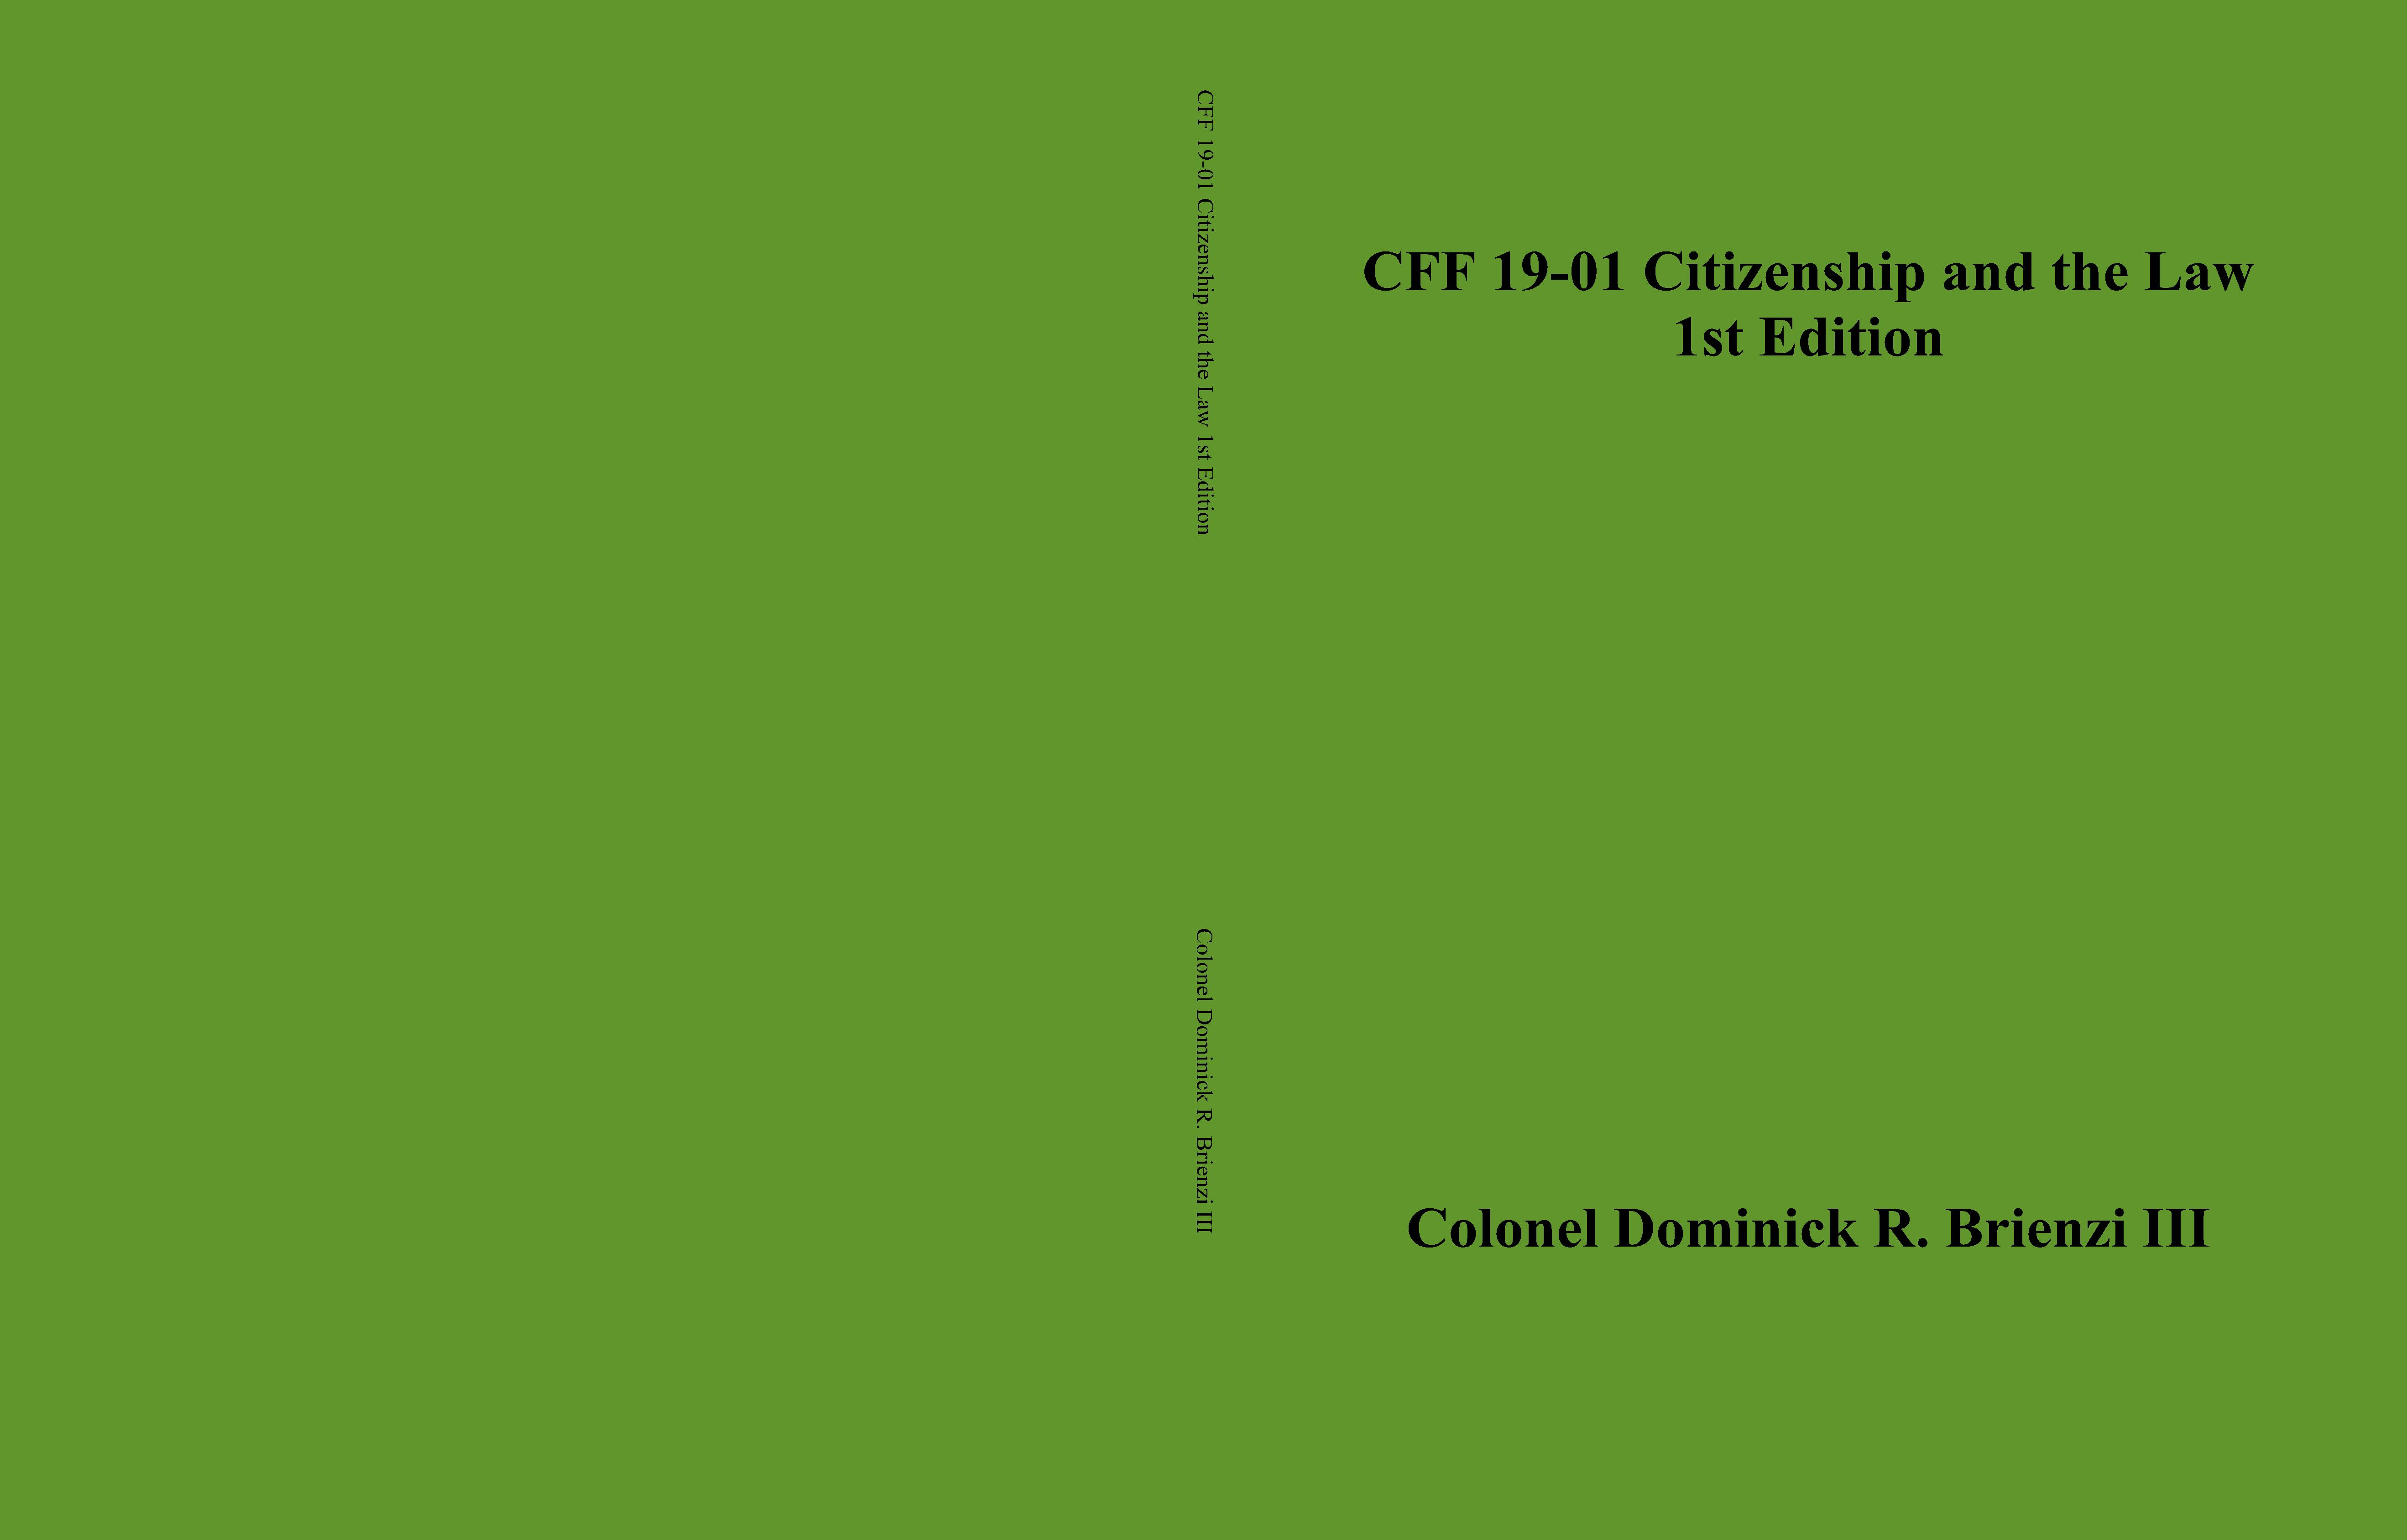 CFF 19-01 Citizenship and the Law 1st Edition cover image